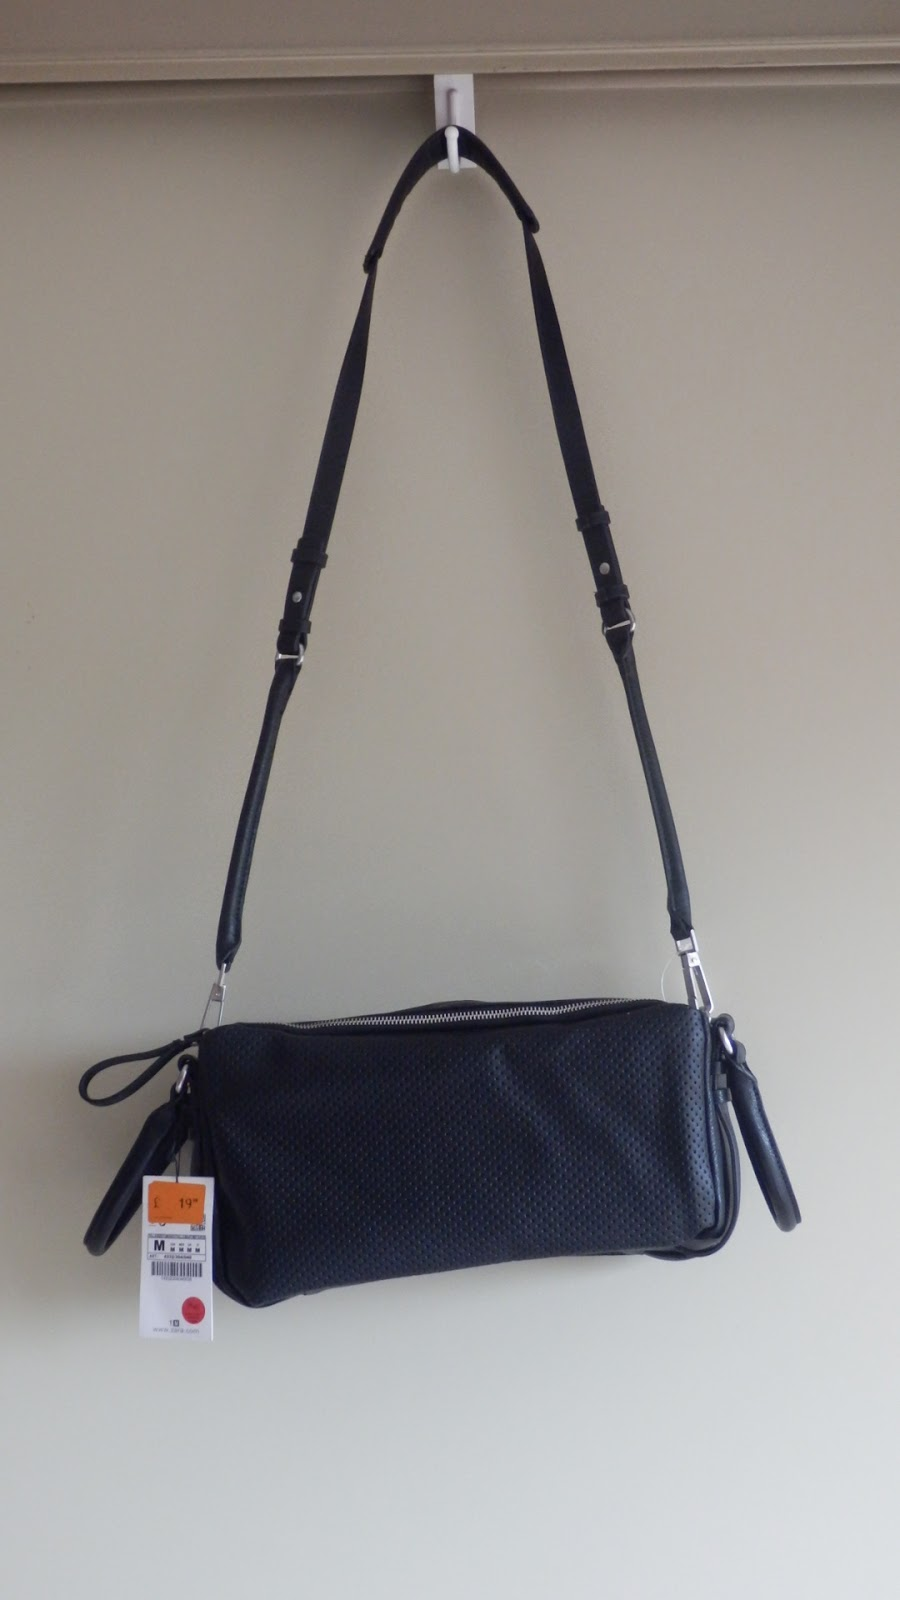 Zara Black Shoulder Bag